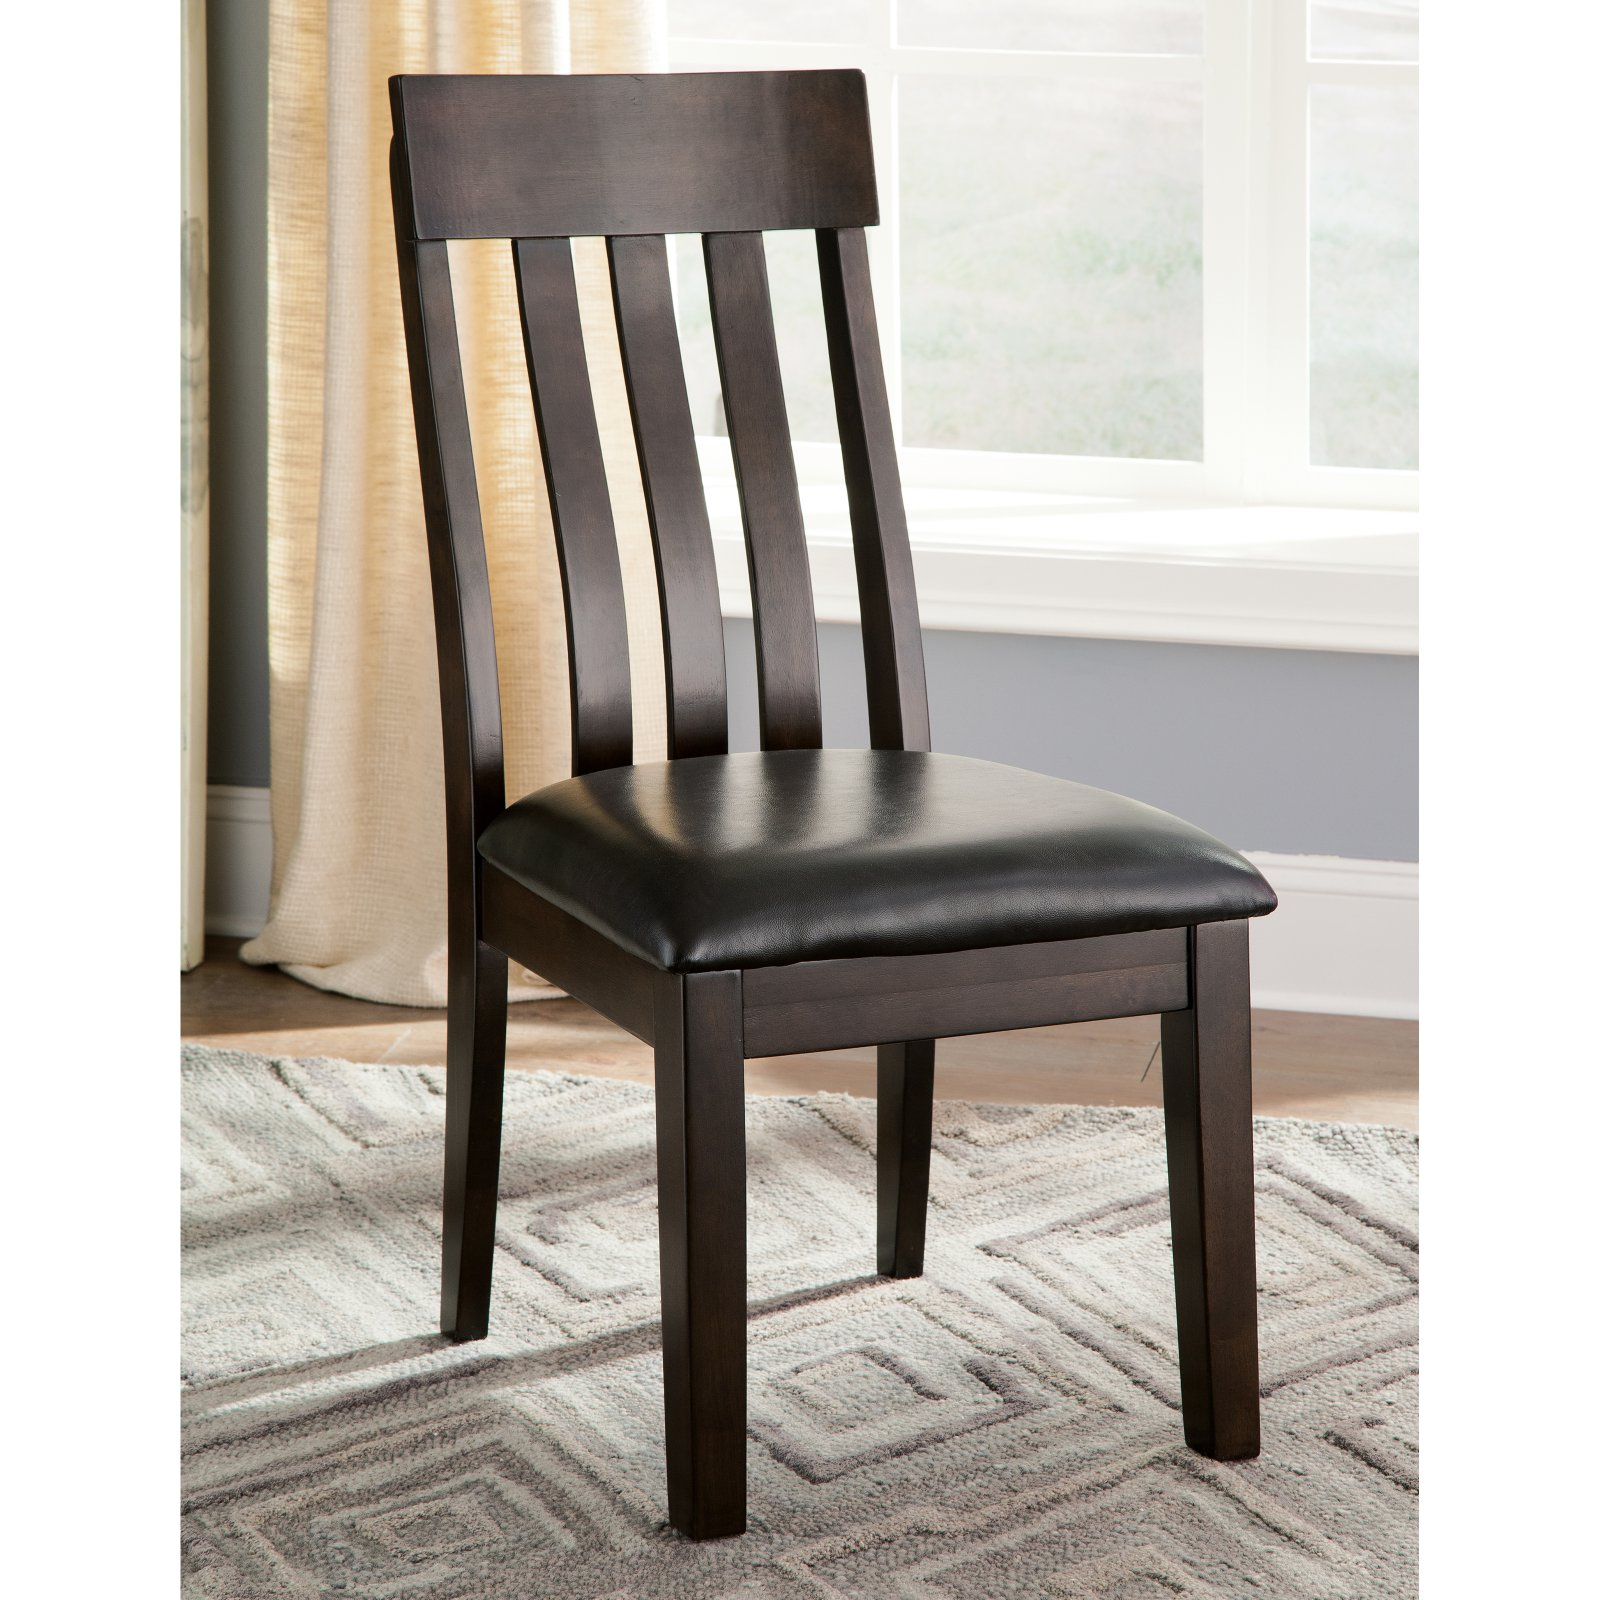 Signature Design by Ashley Haddigan Dining Chair - Set of 2